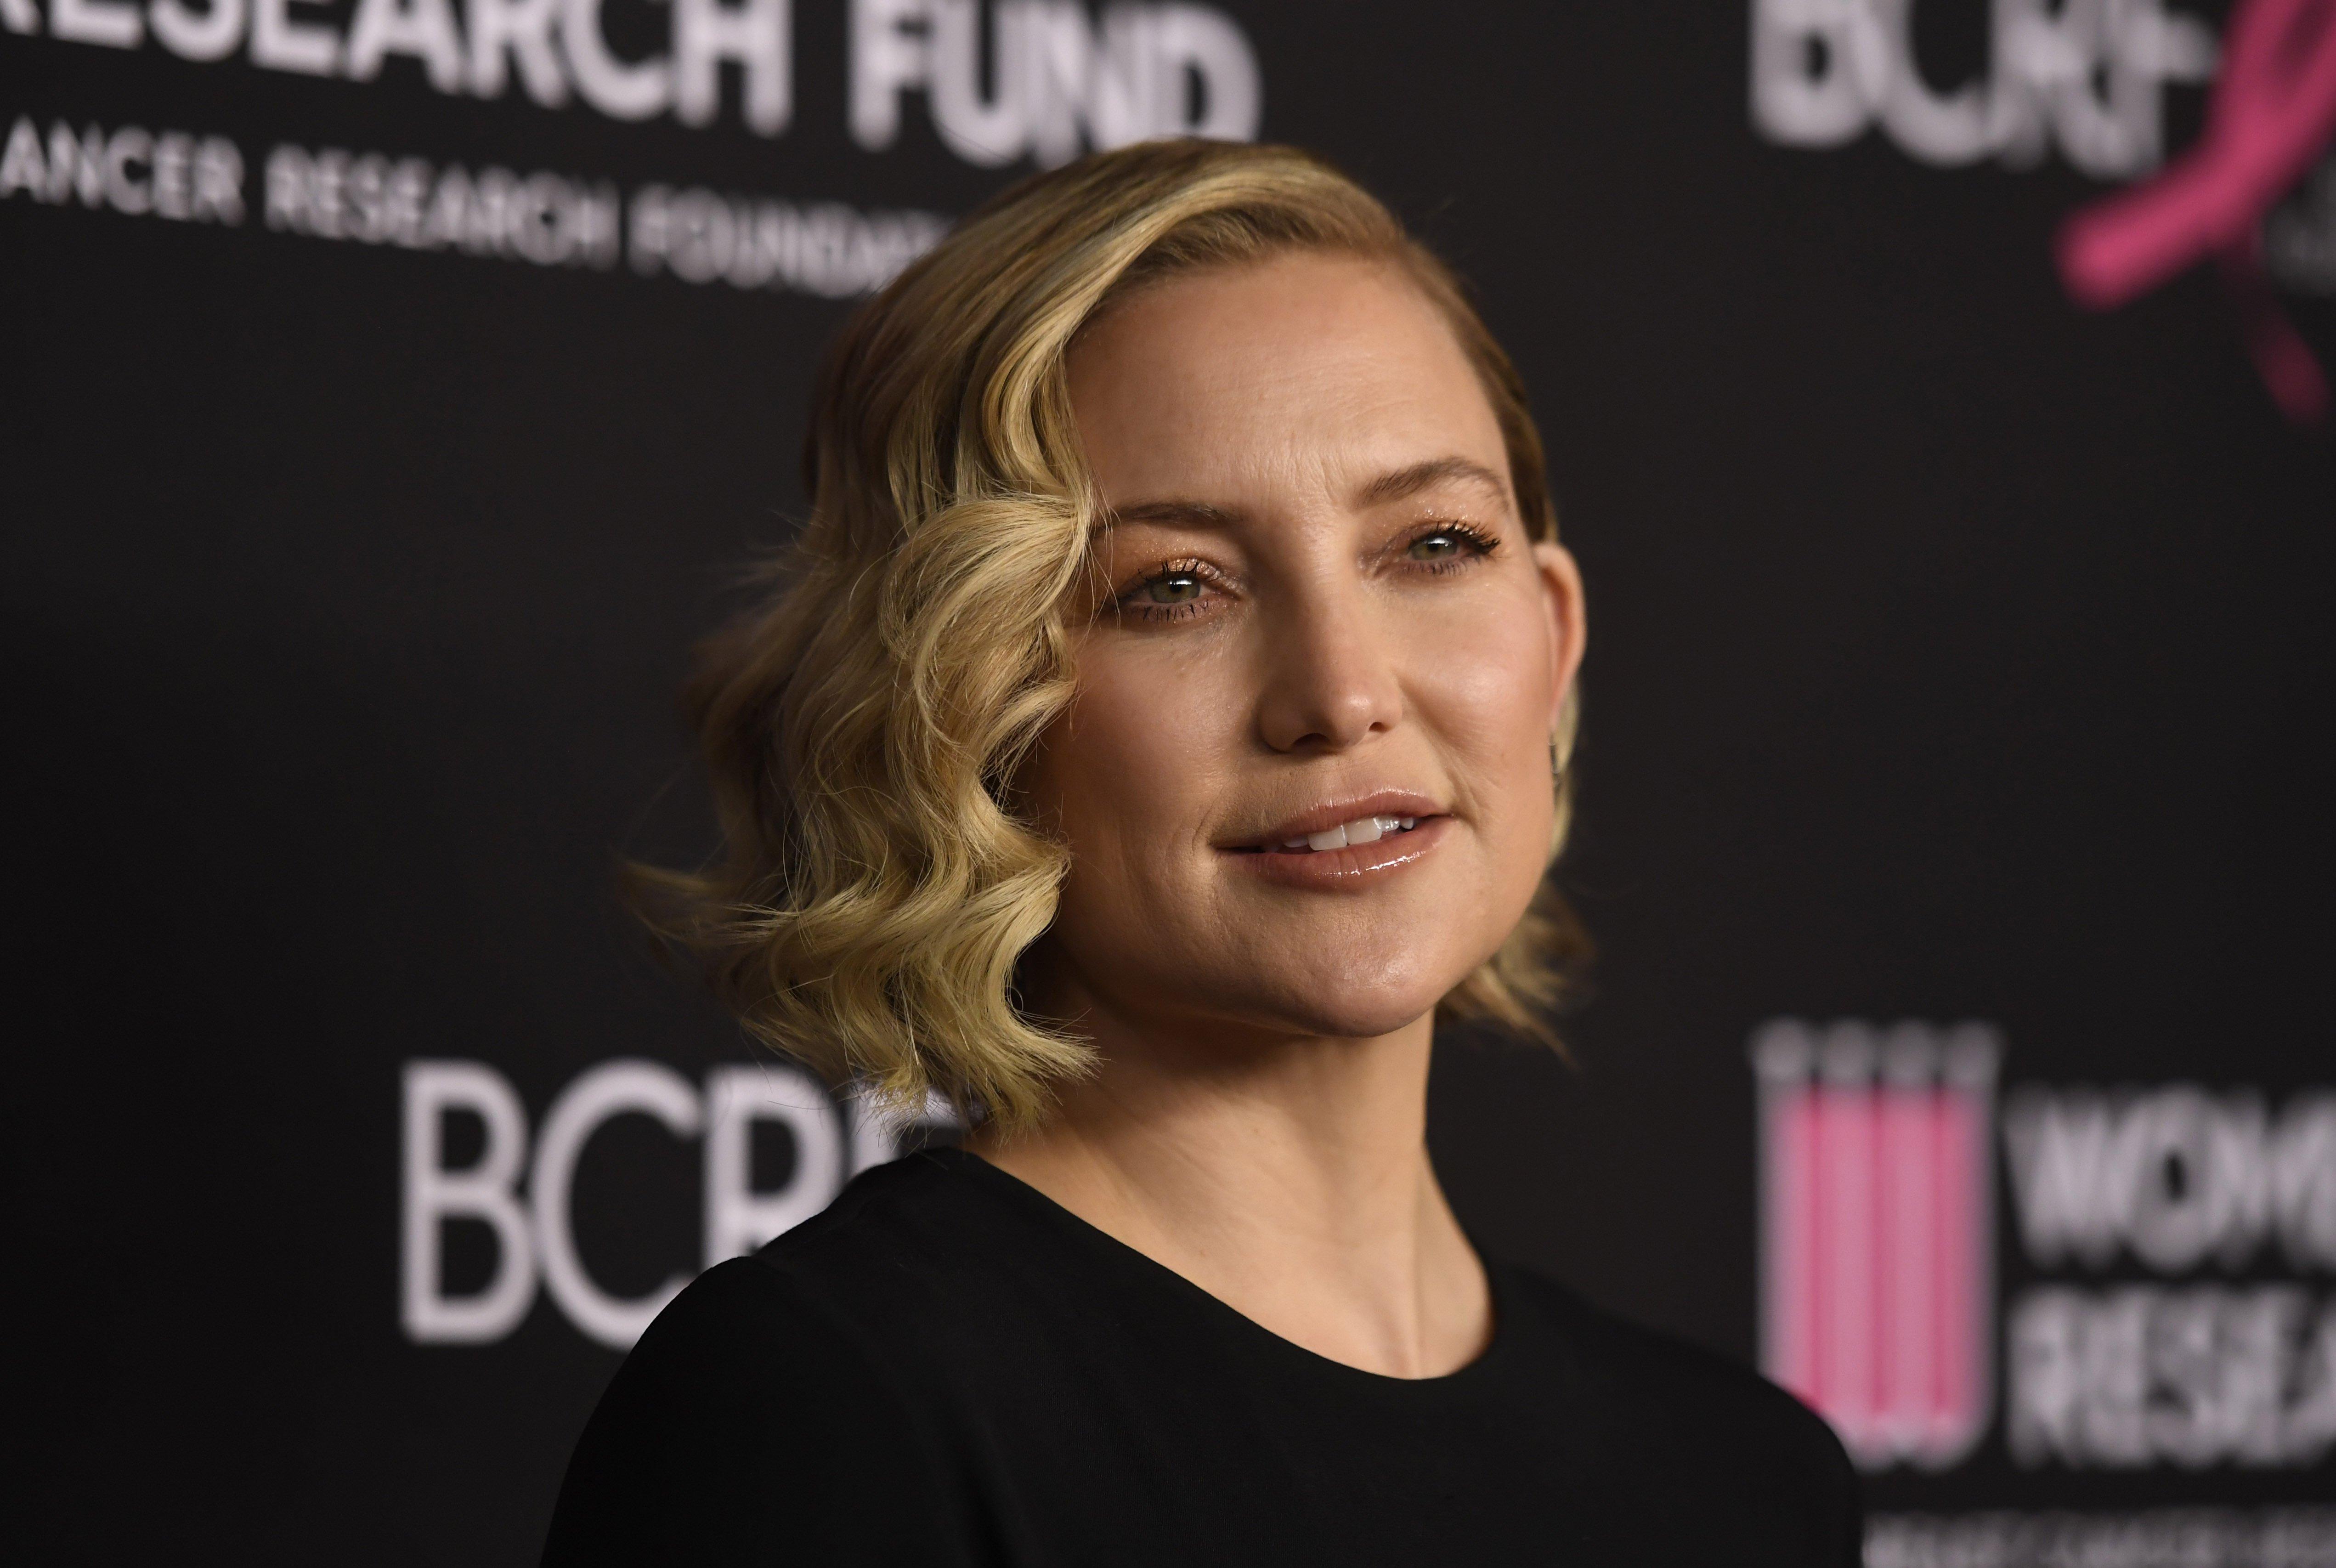 February 2020 Kate Hudson attended an event for The Women's Cancer Research Fund.| Photo Getty Images